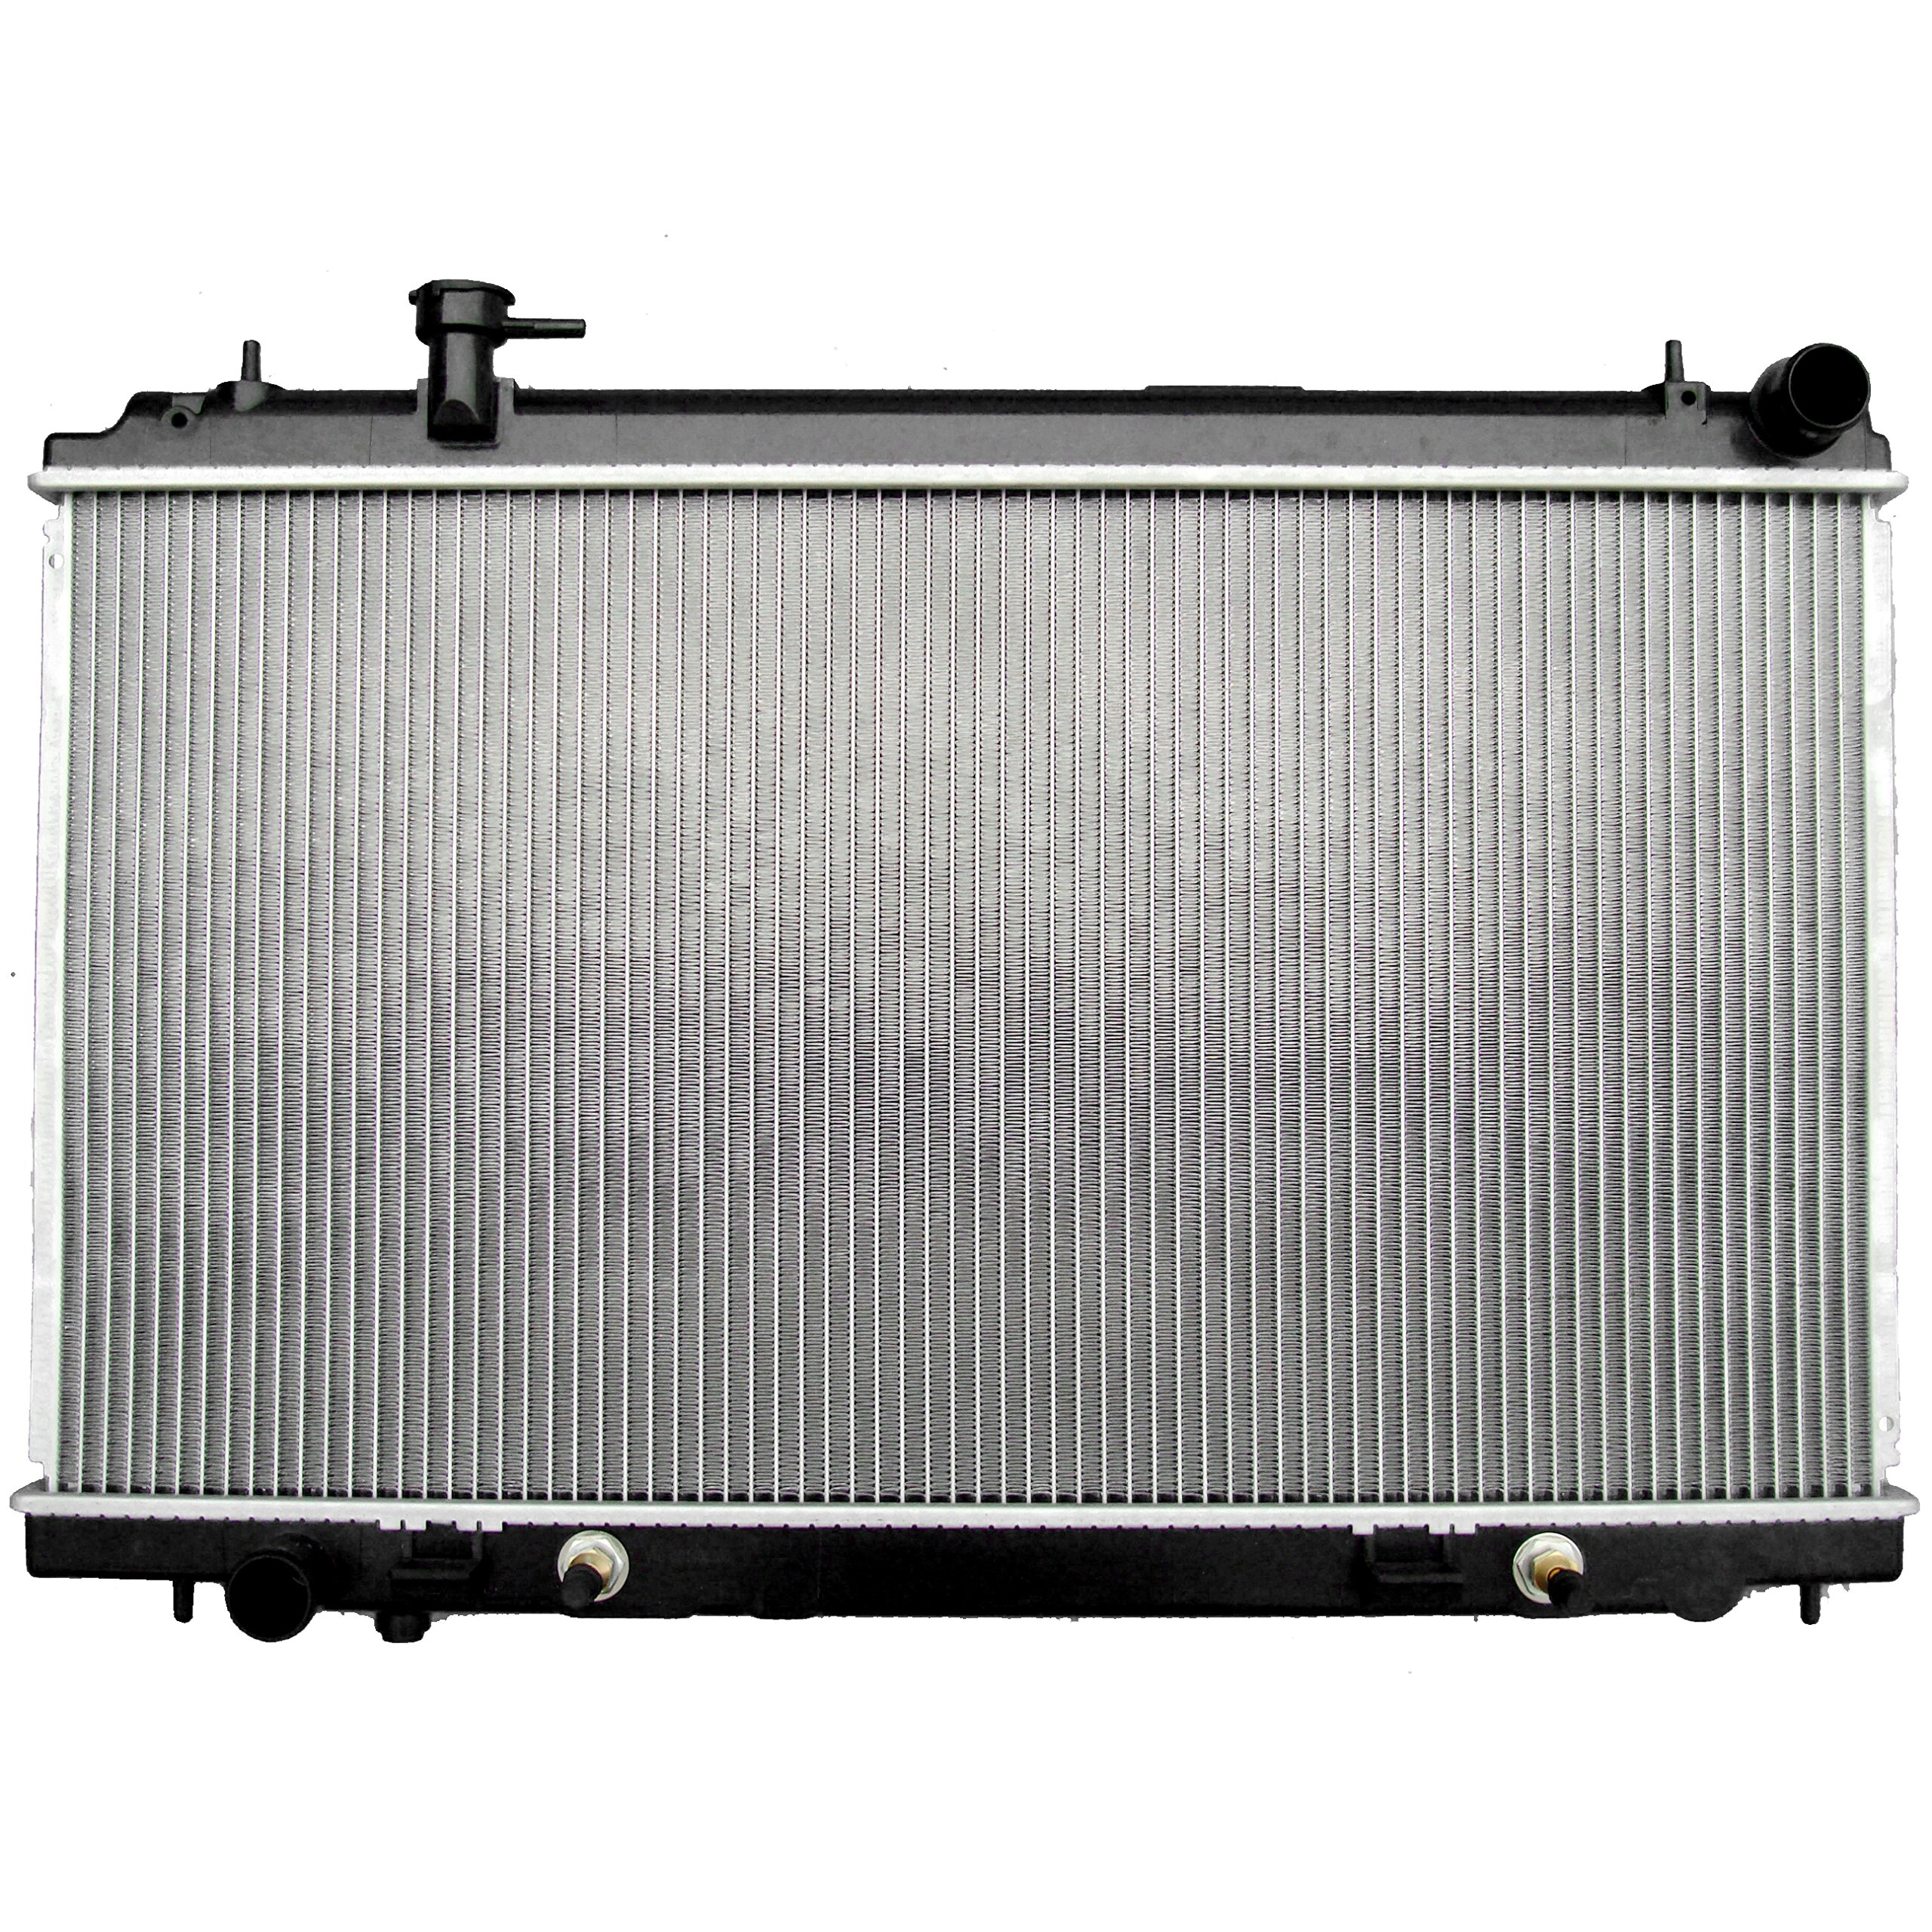 SCITOO Radiator 2576 for 2003-2006 Nissan 350Z 3.5L by Scitoo